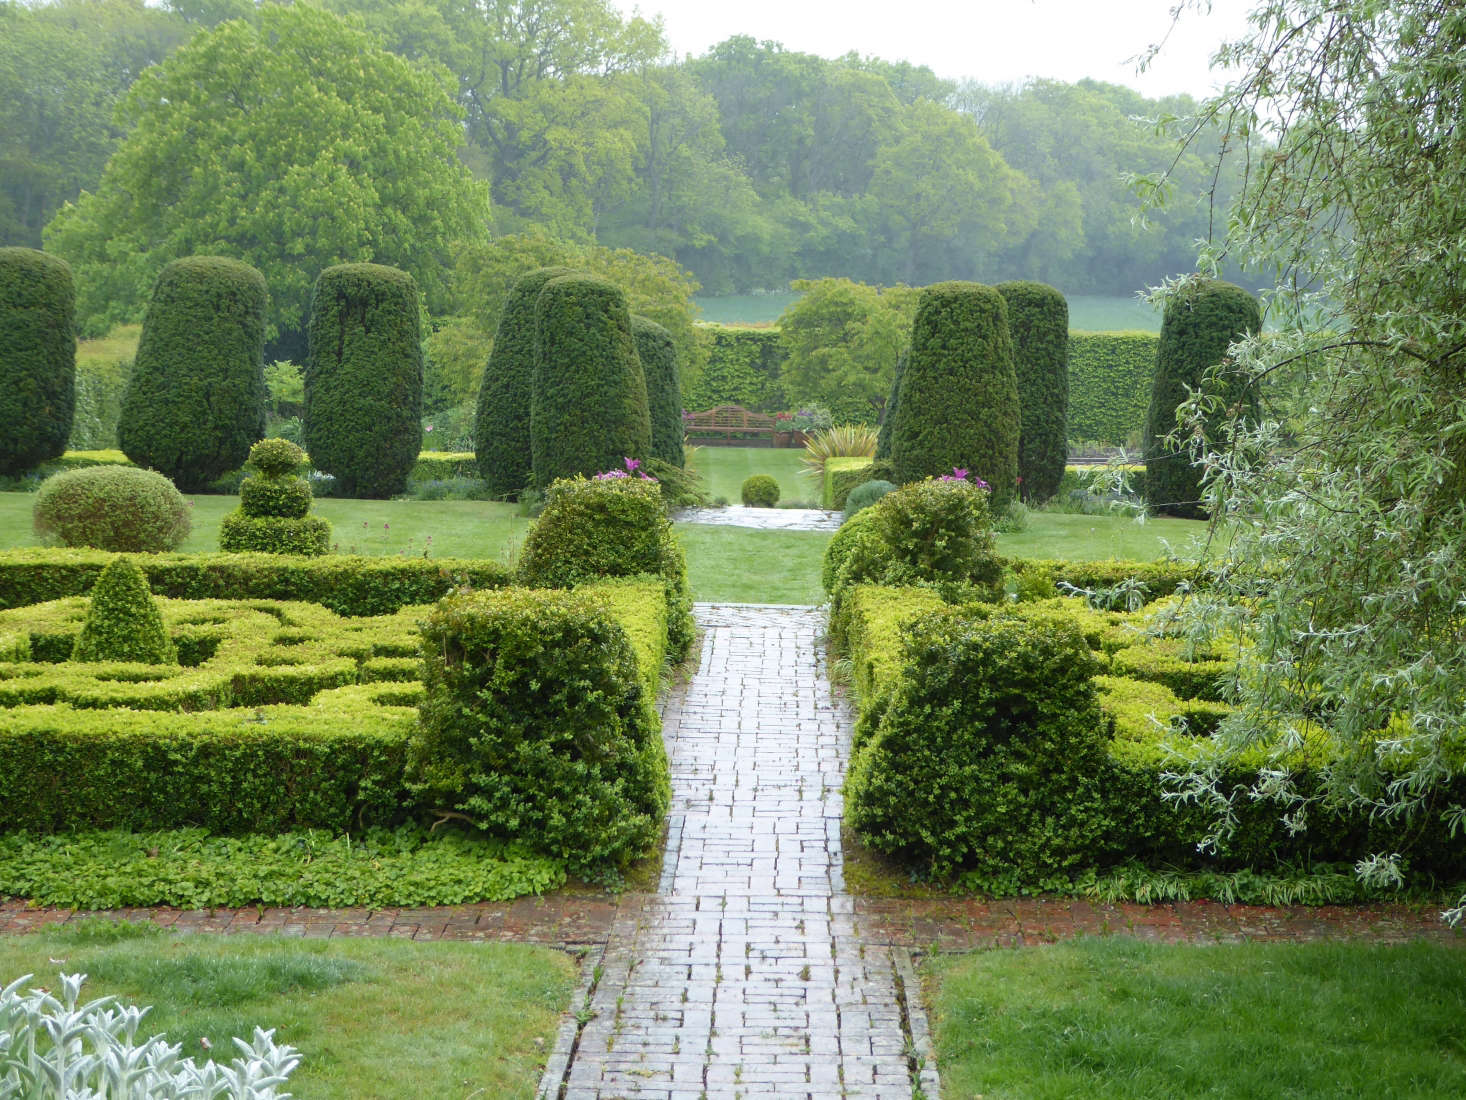 A north-to-south path cuts right across the garden.